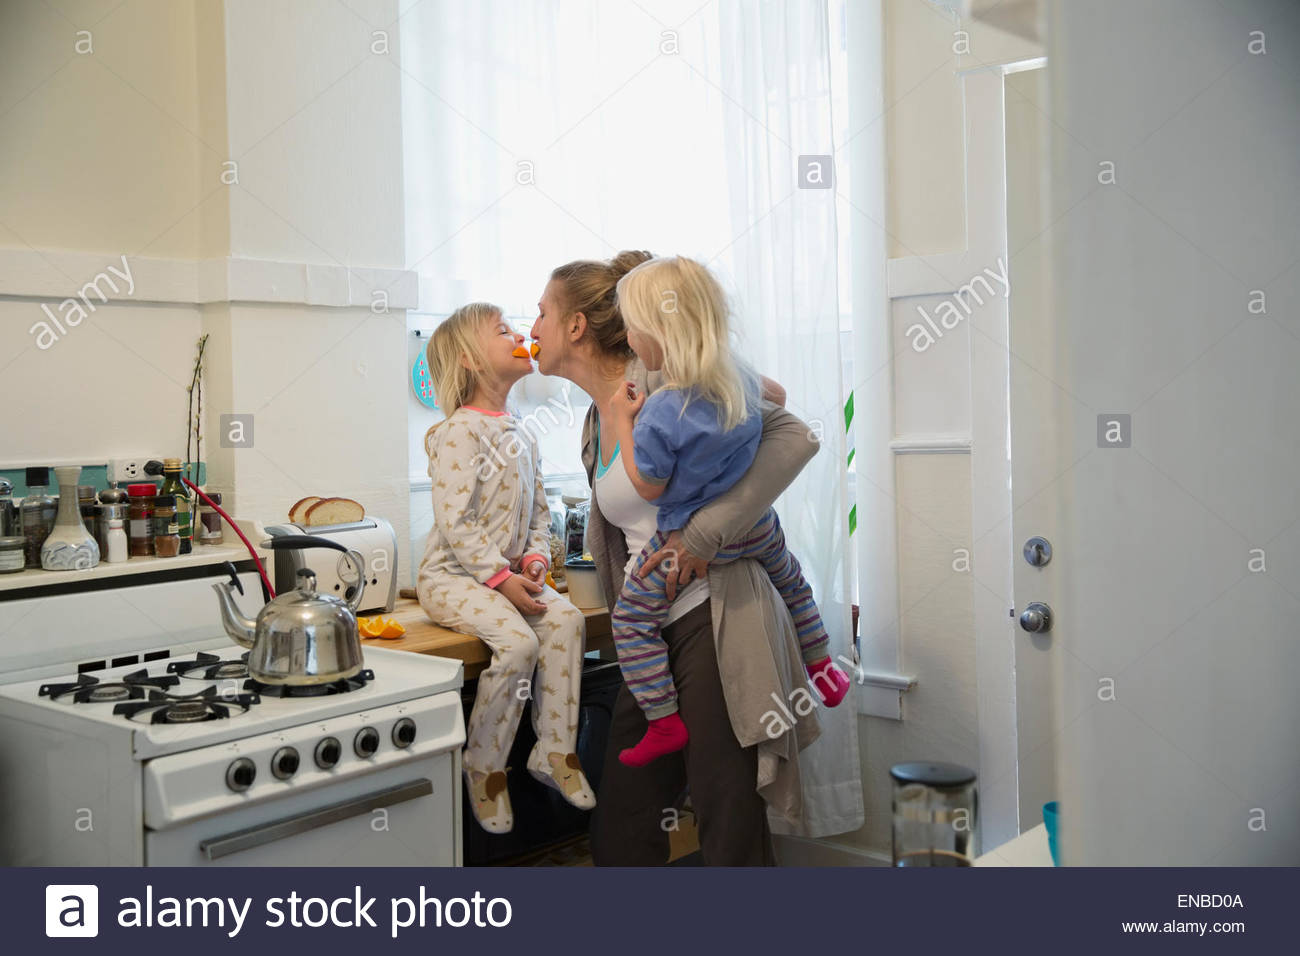 Playful mother and daughters in morning kitchen - Stock Image